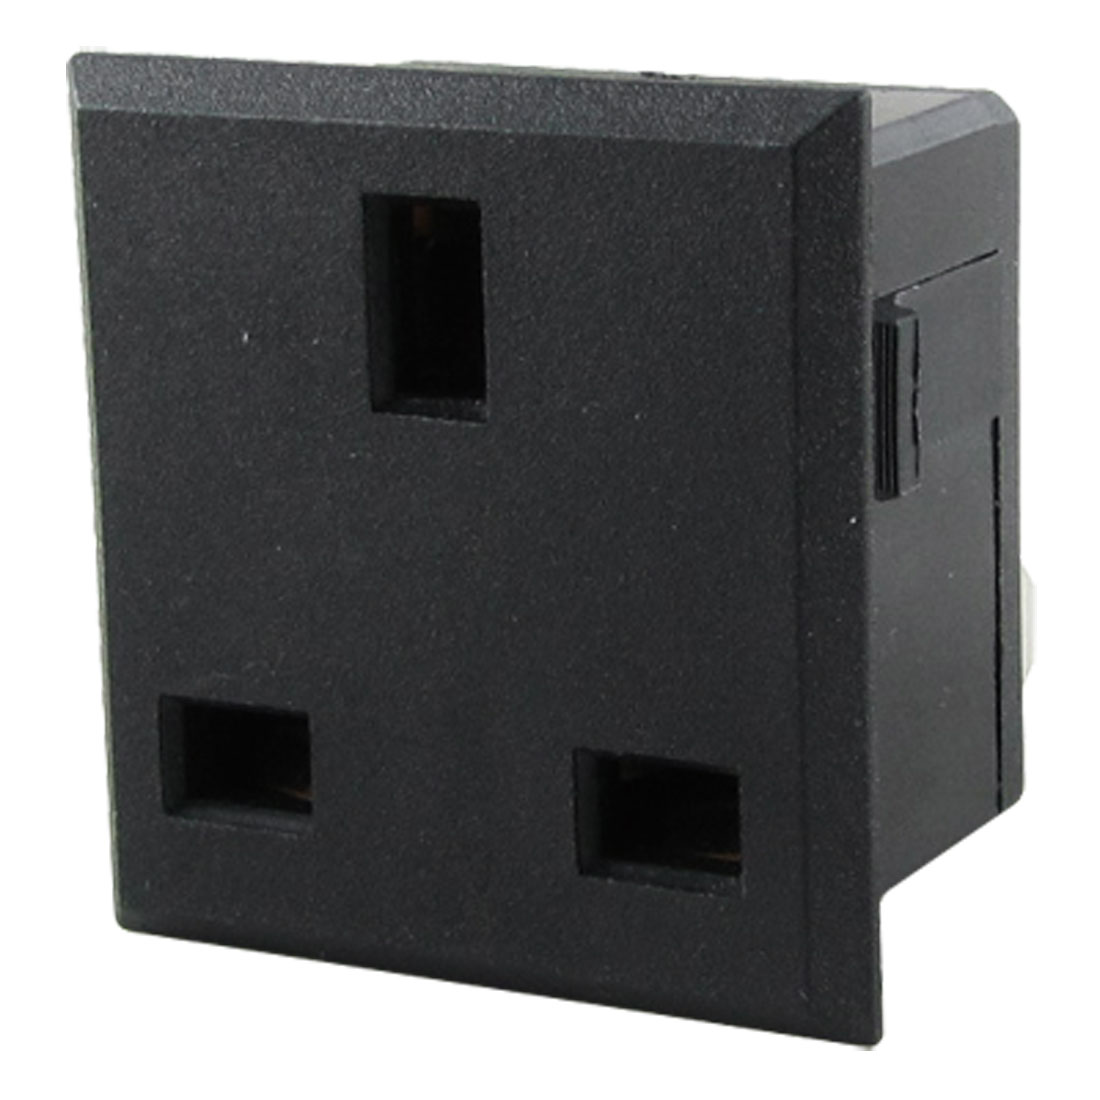 AC 250V 13A Square UK Panel Socket Plug Outlet Power Receptacle Black